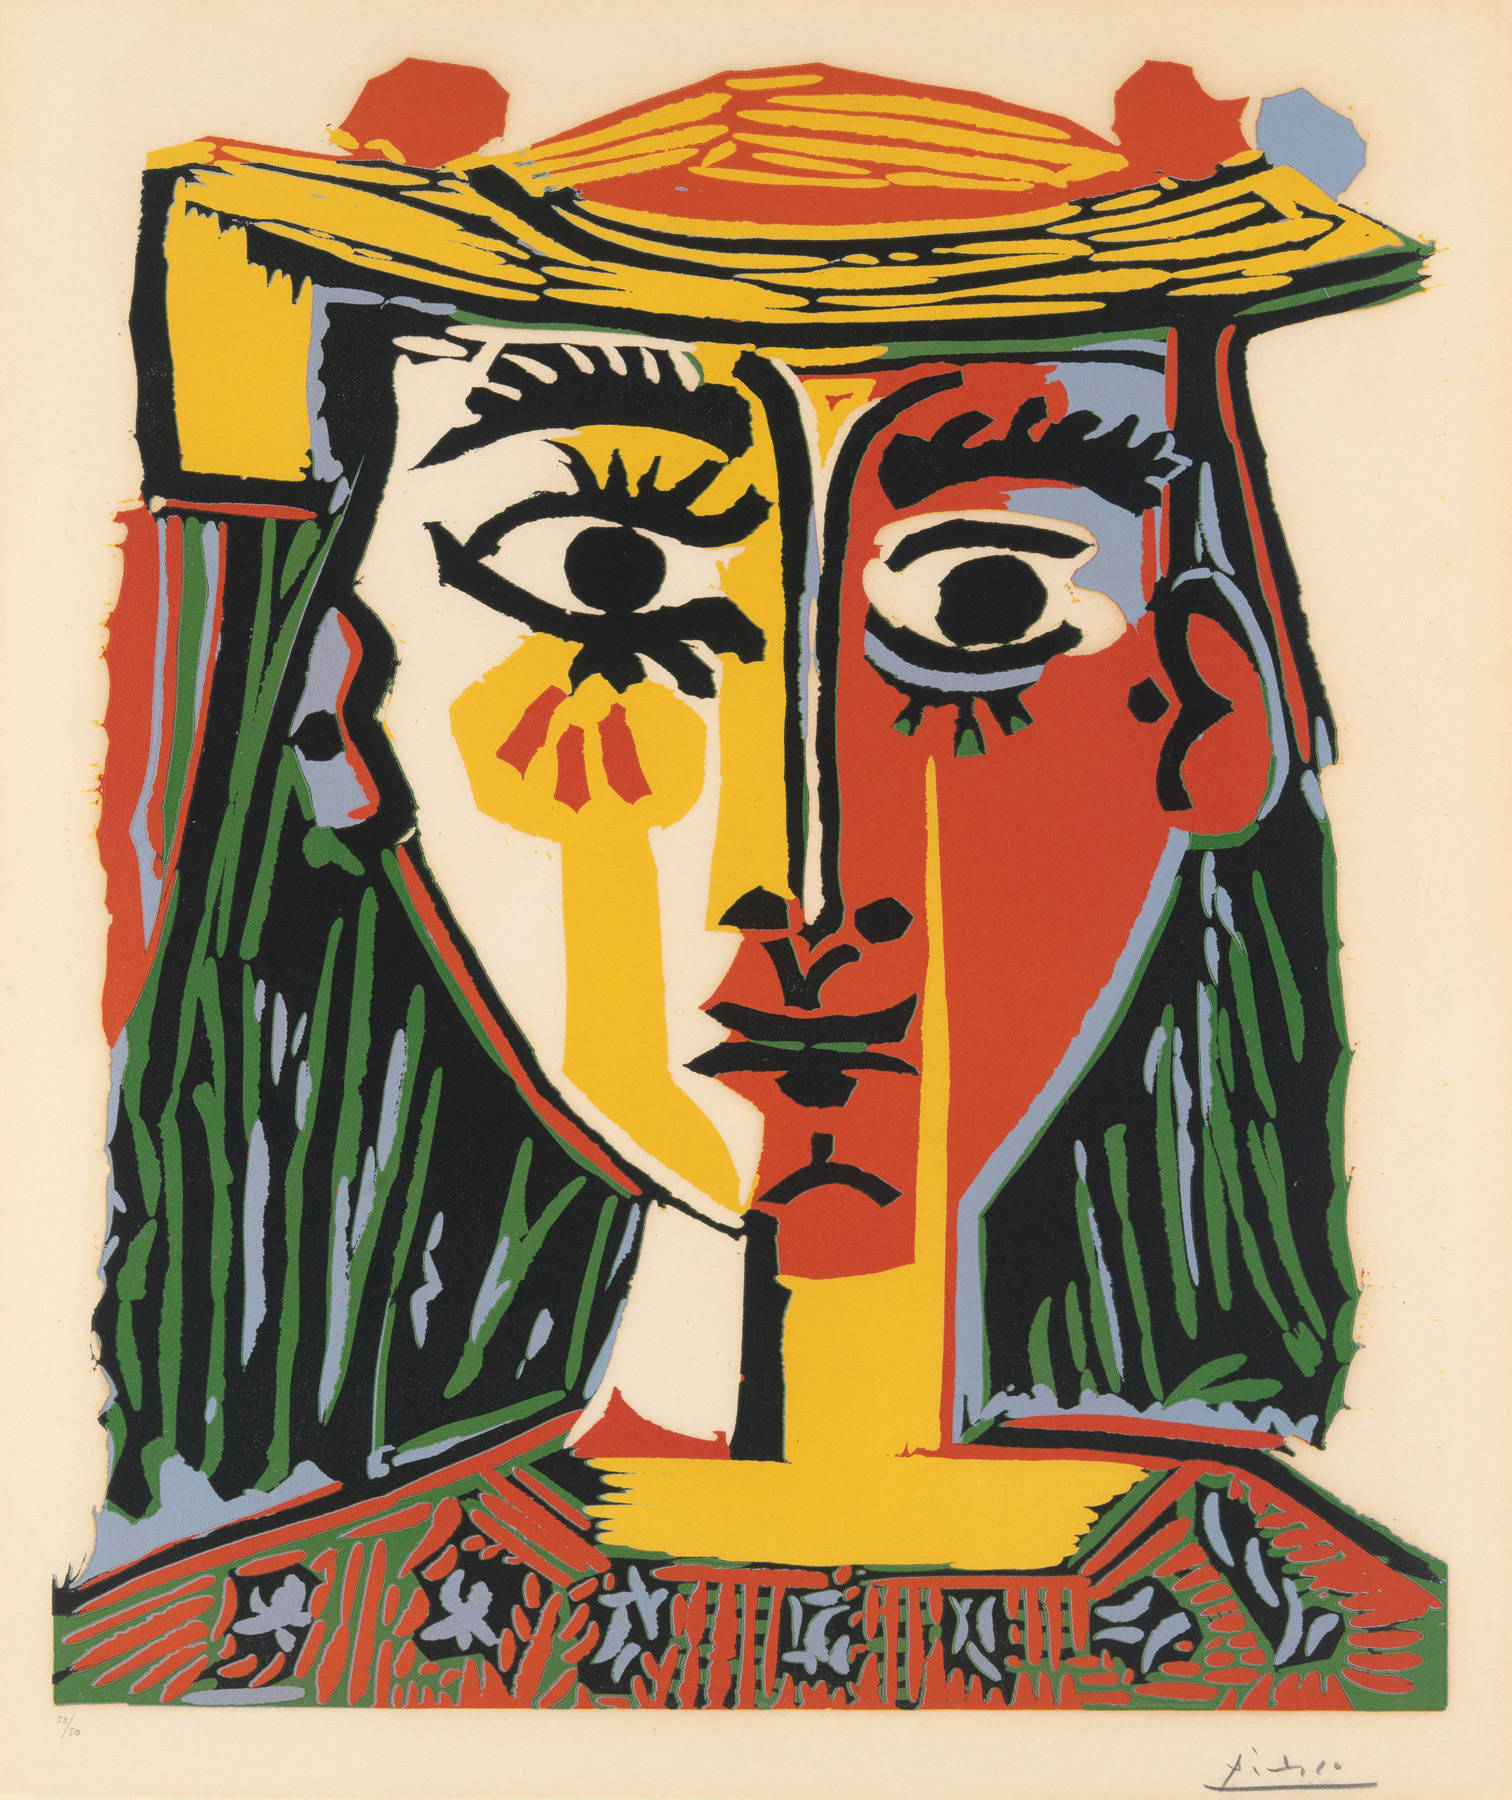 Picasso Cubist Faces To do with picasso at all